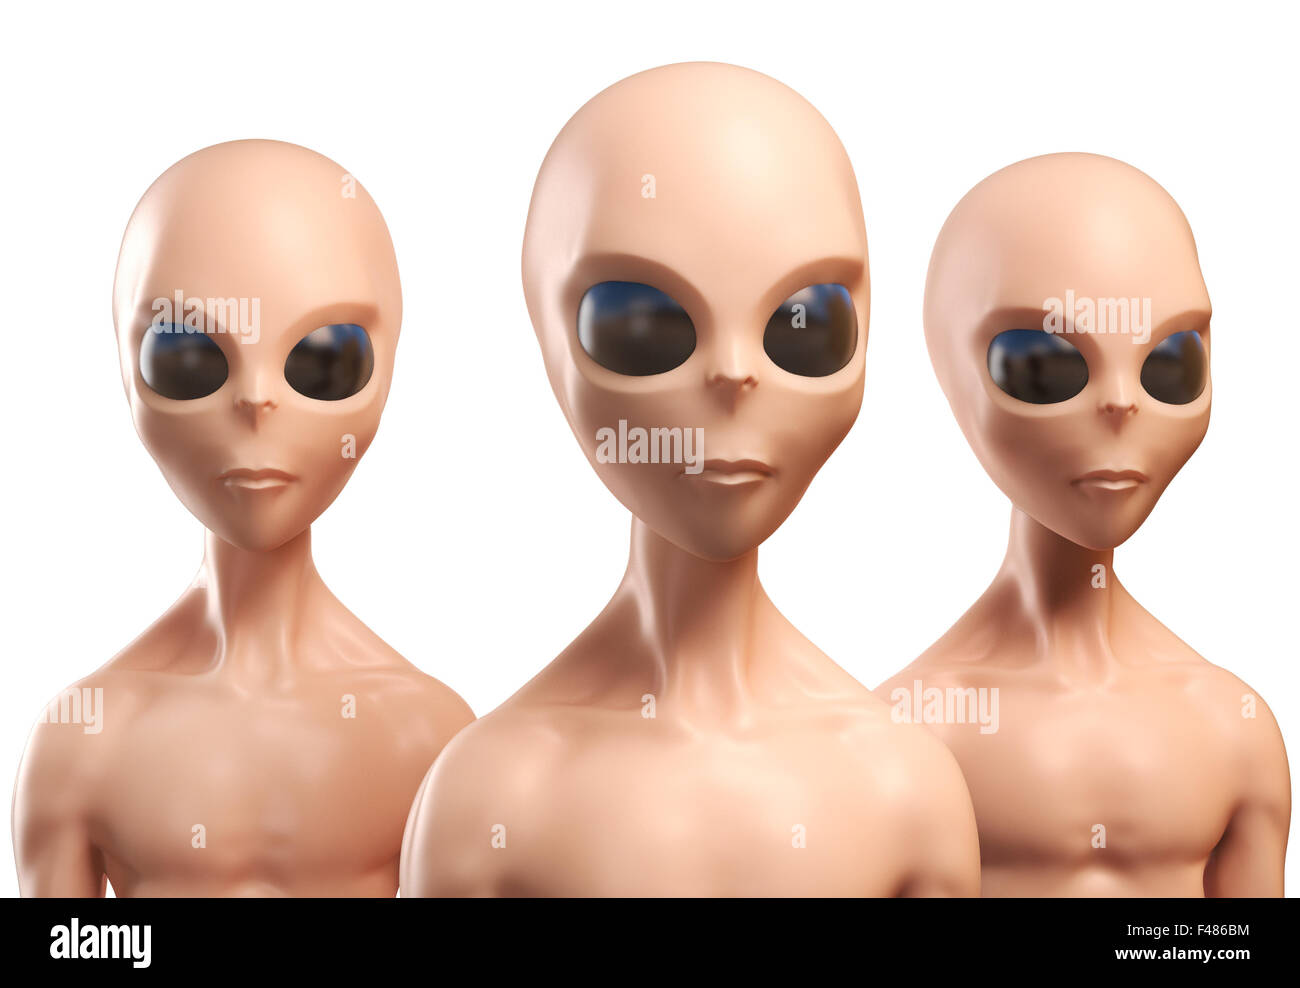 Aliens 3d illustration - Stock Image